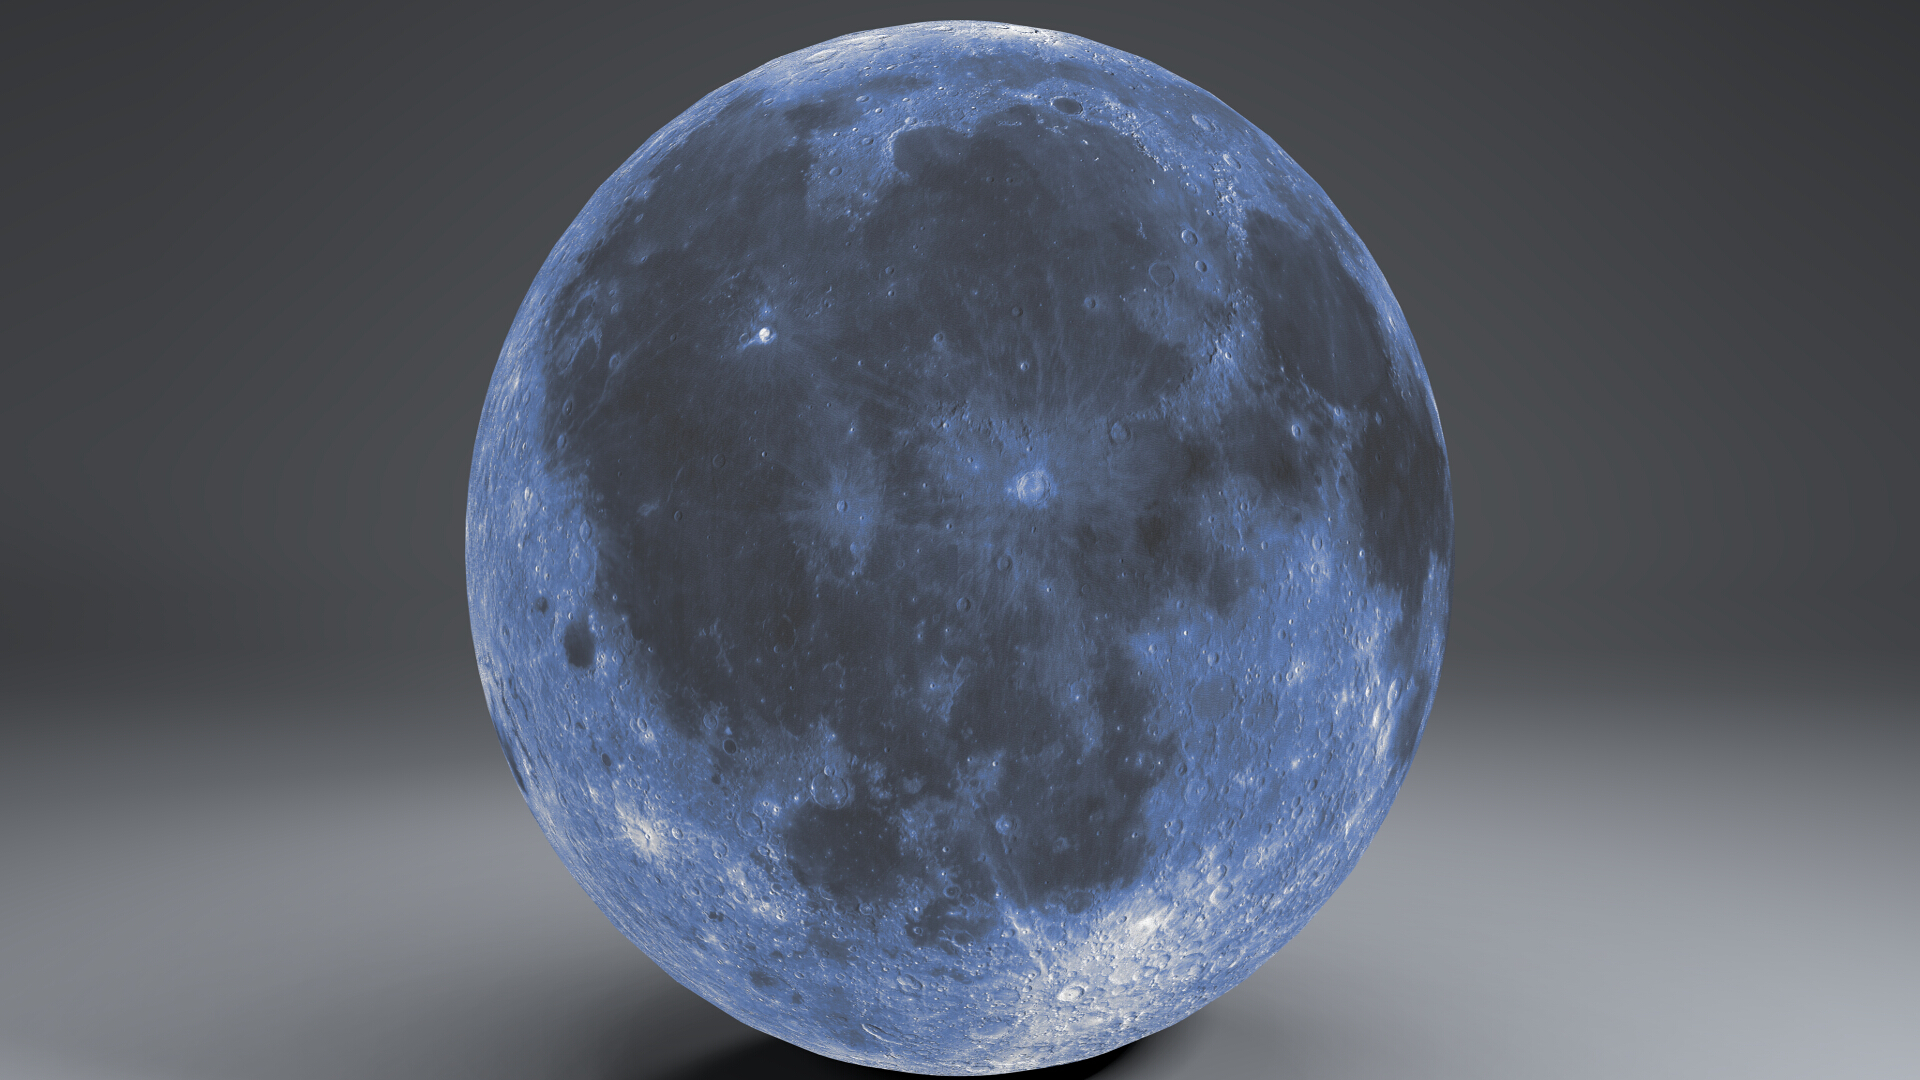 blauwe moonglobe 11k 3d model 3ds fbx blend dae obj 221886